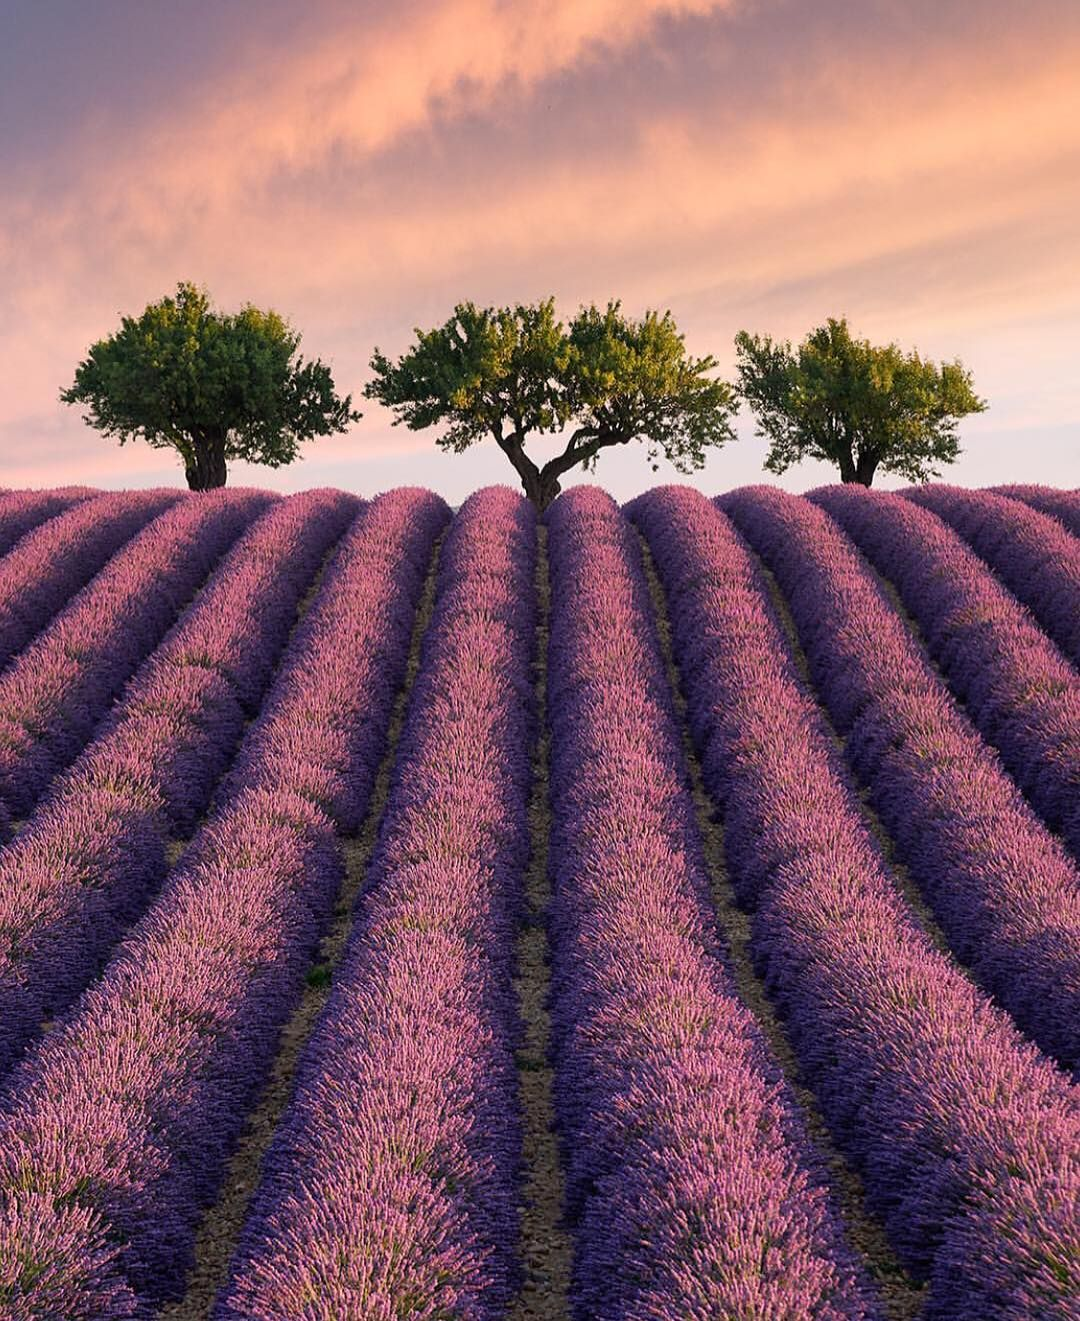 Its hard to describe in words just how stunning the lavender fields its hard to describe in words just how stunning the lavender fields in southern france can be here is one of my favorite locations where three trees izmirmasajfo